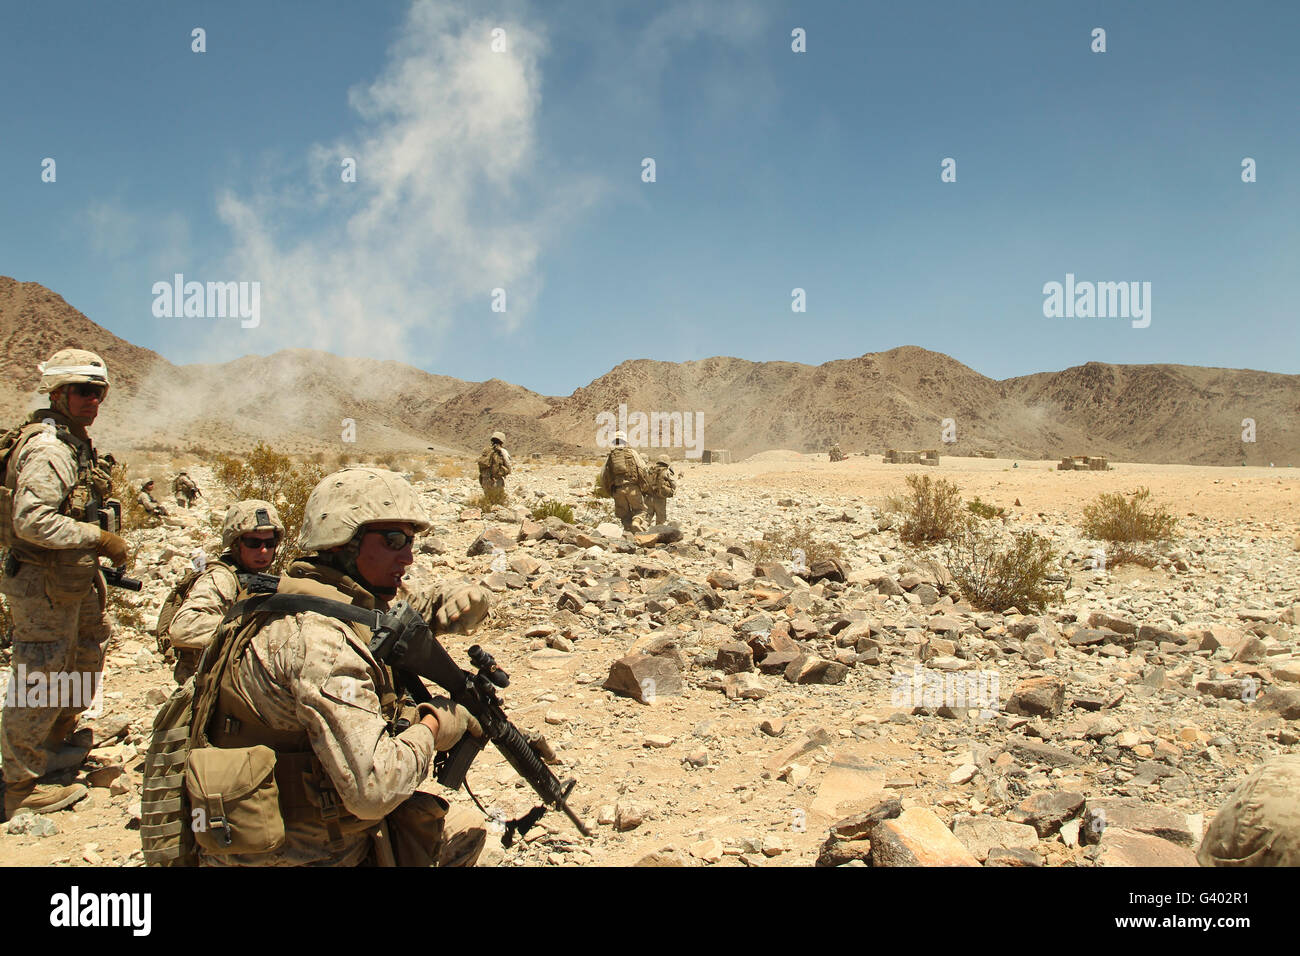 Rifleman gives his team the command to cease fire. - Stock Image